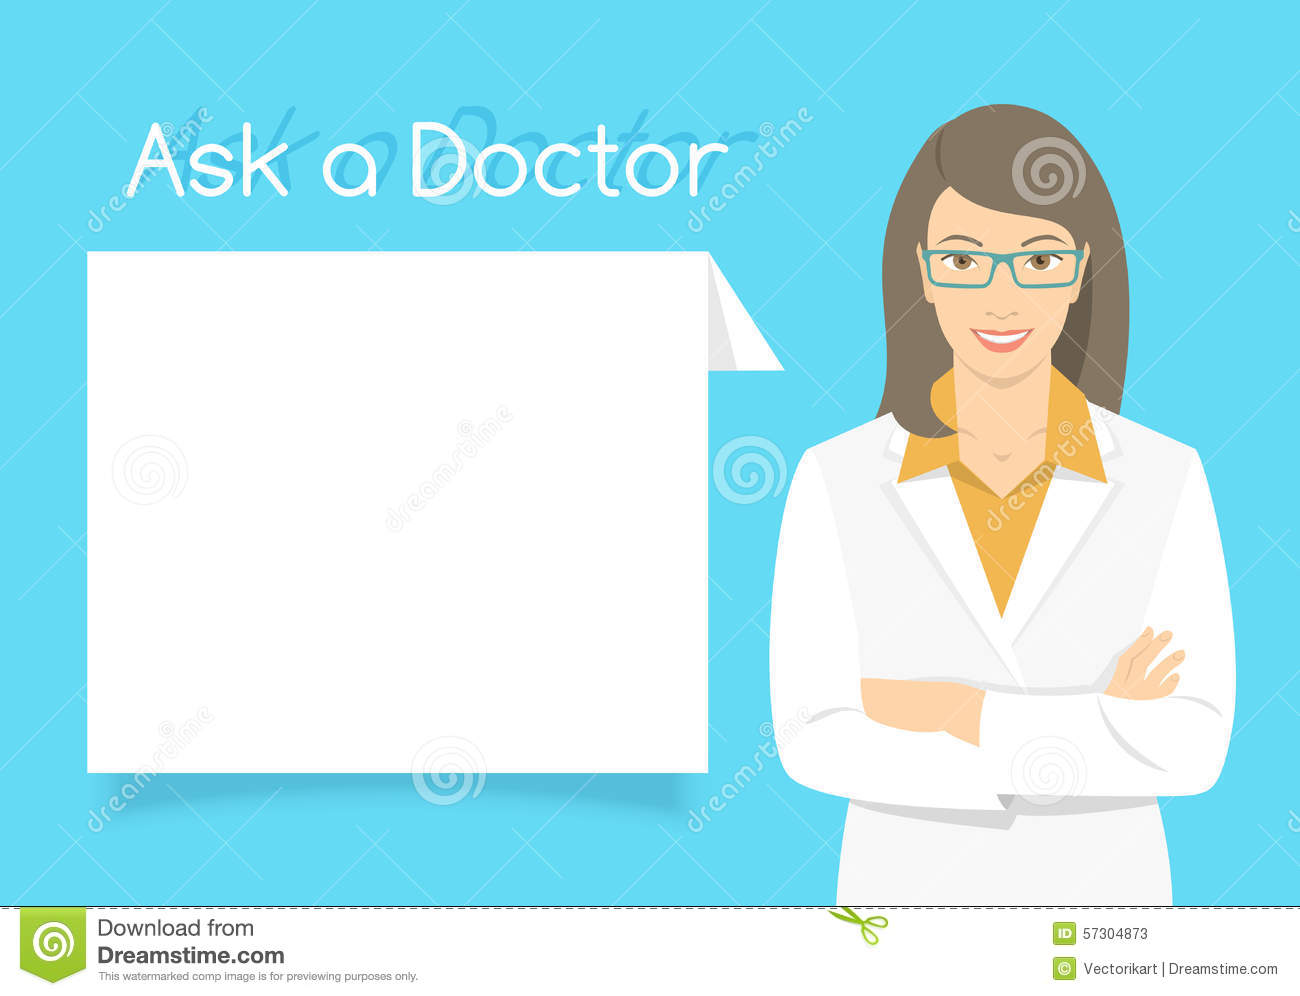 Ask A Doctor >> Ask A Doctor Information Banner Stock Vector Illustration Of